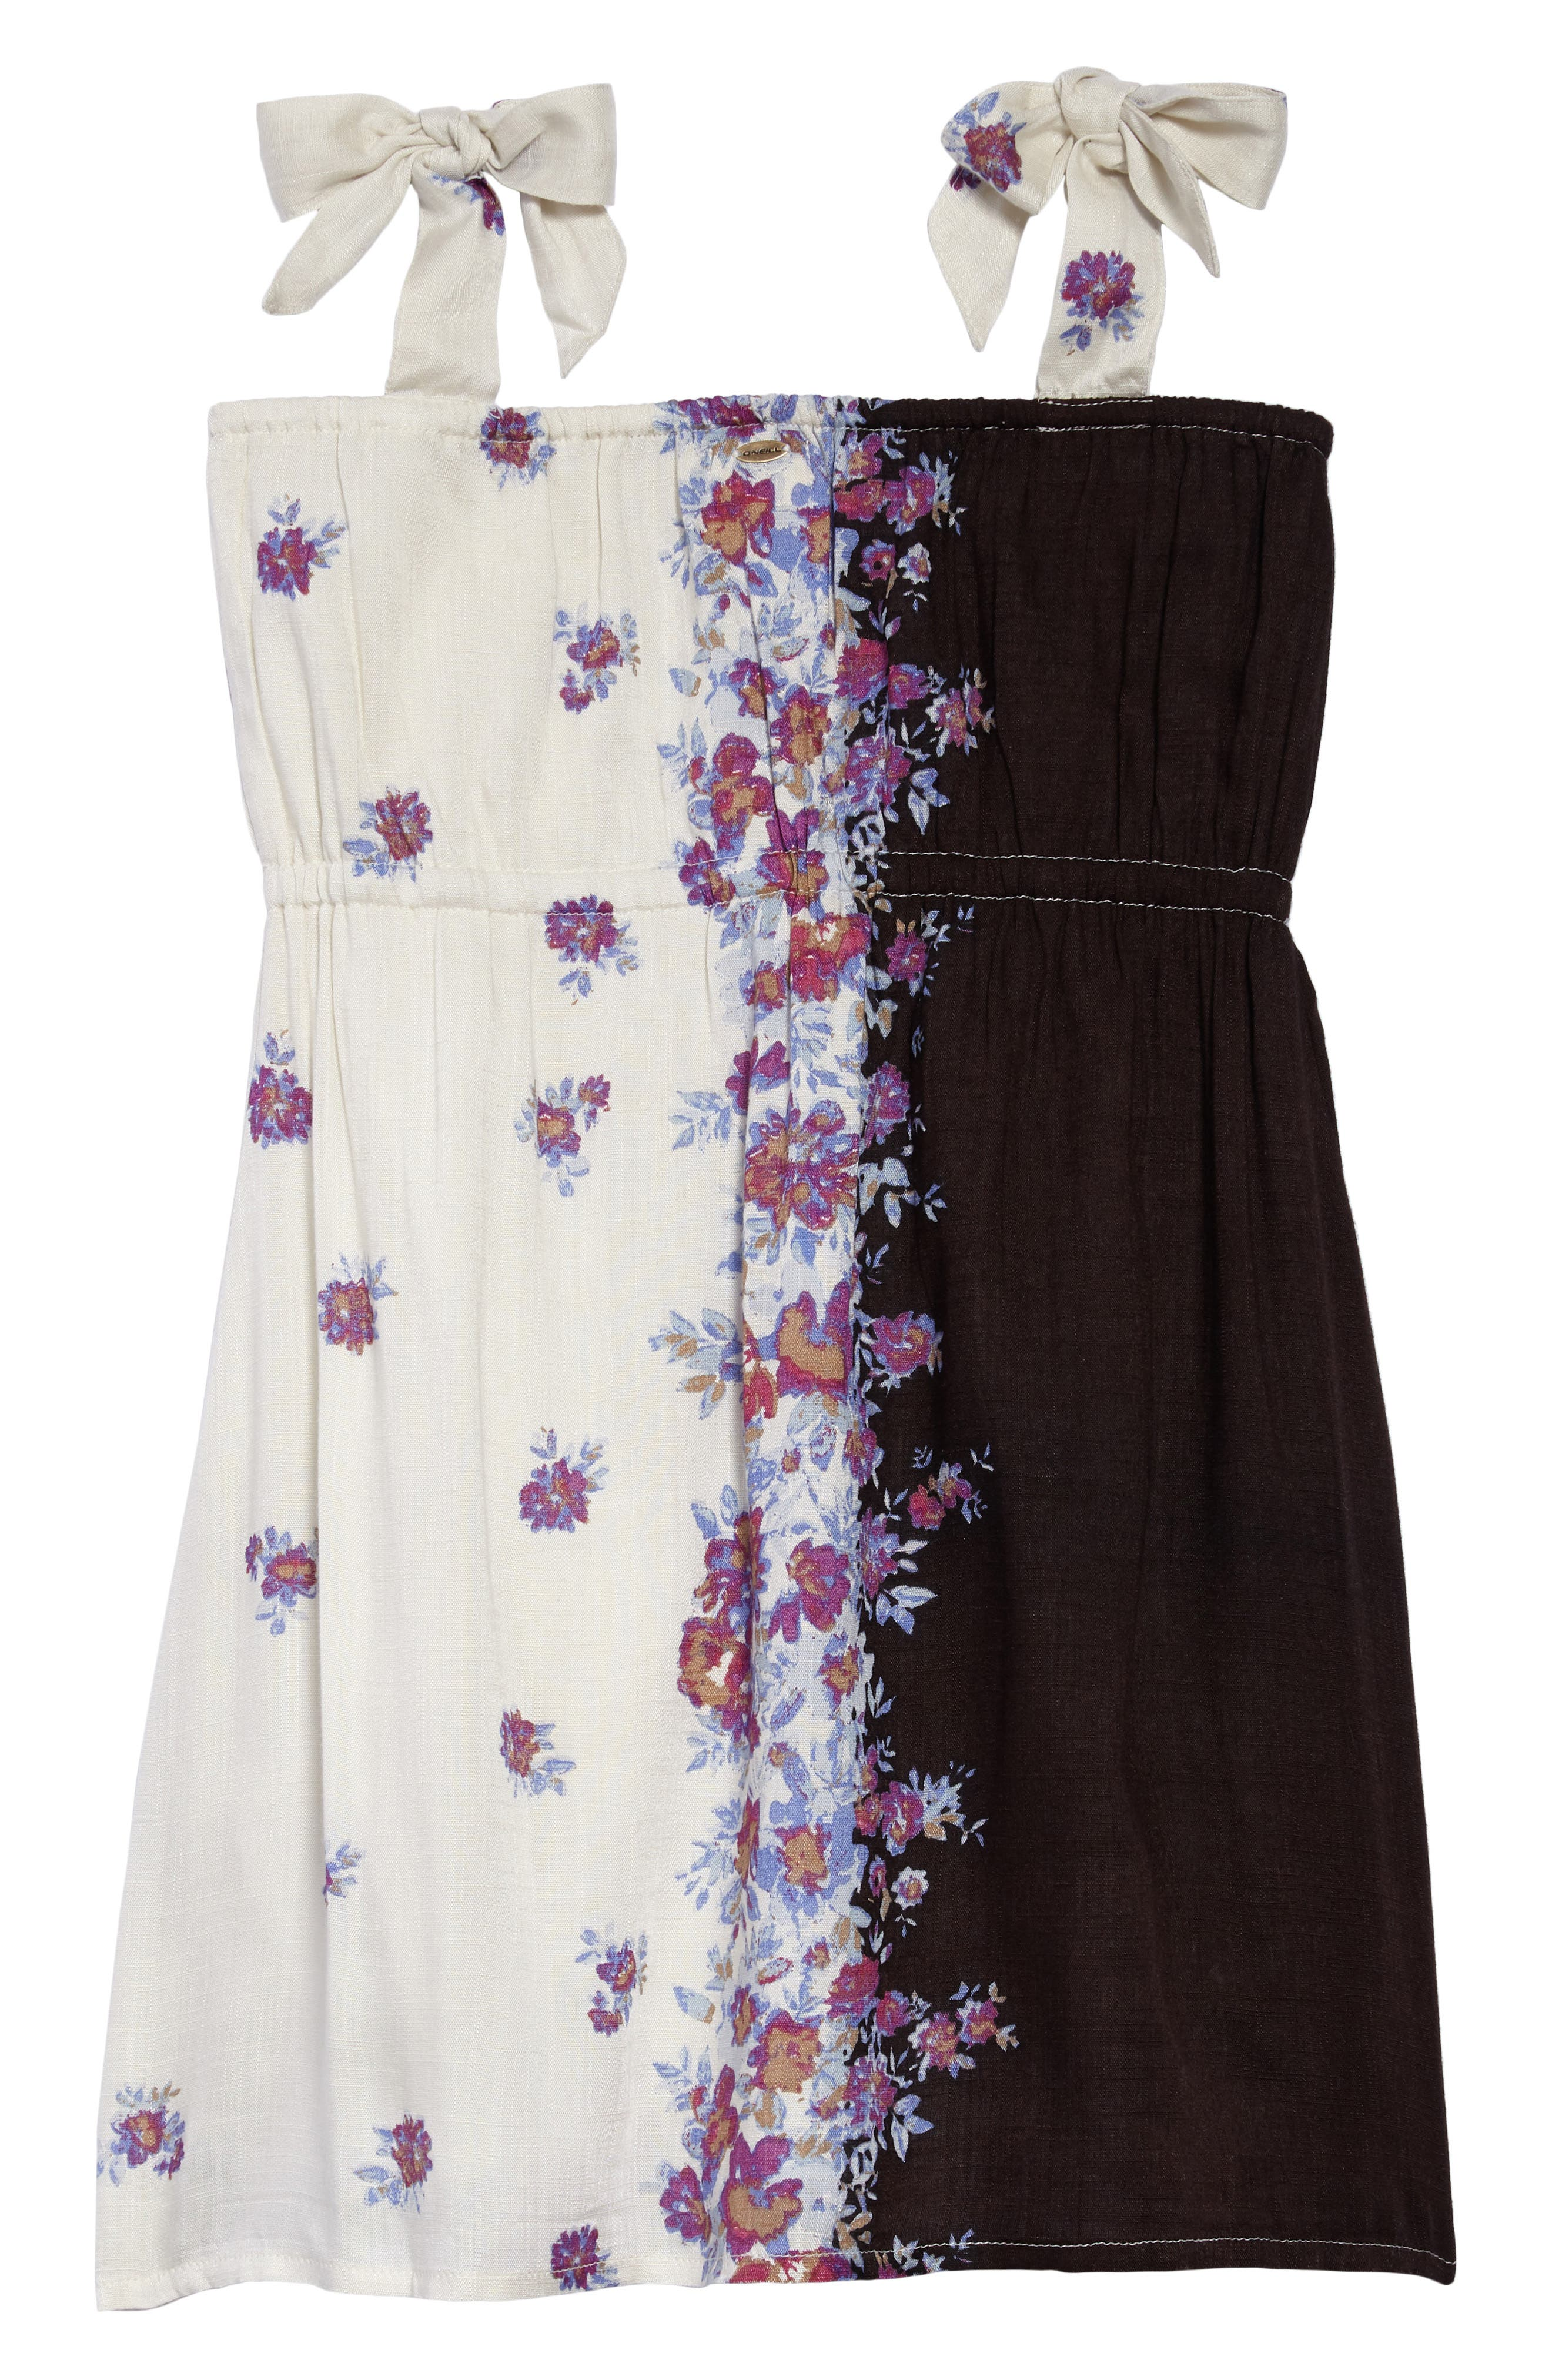 Rosy Floral Dress,                             Alternate thumbnail 2, color,                             MULTI COLORED